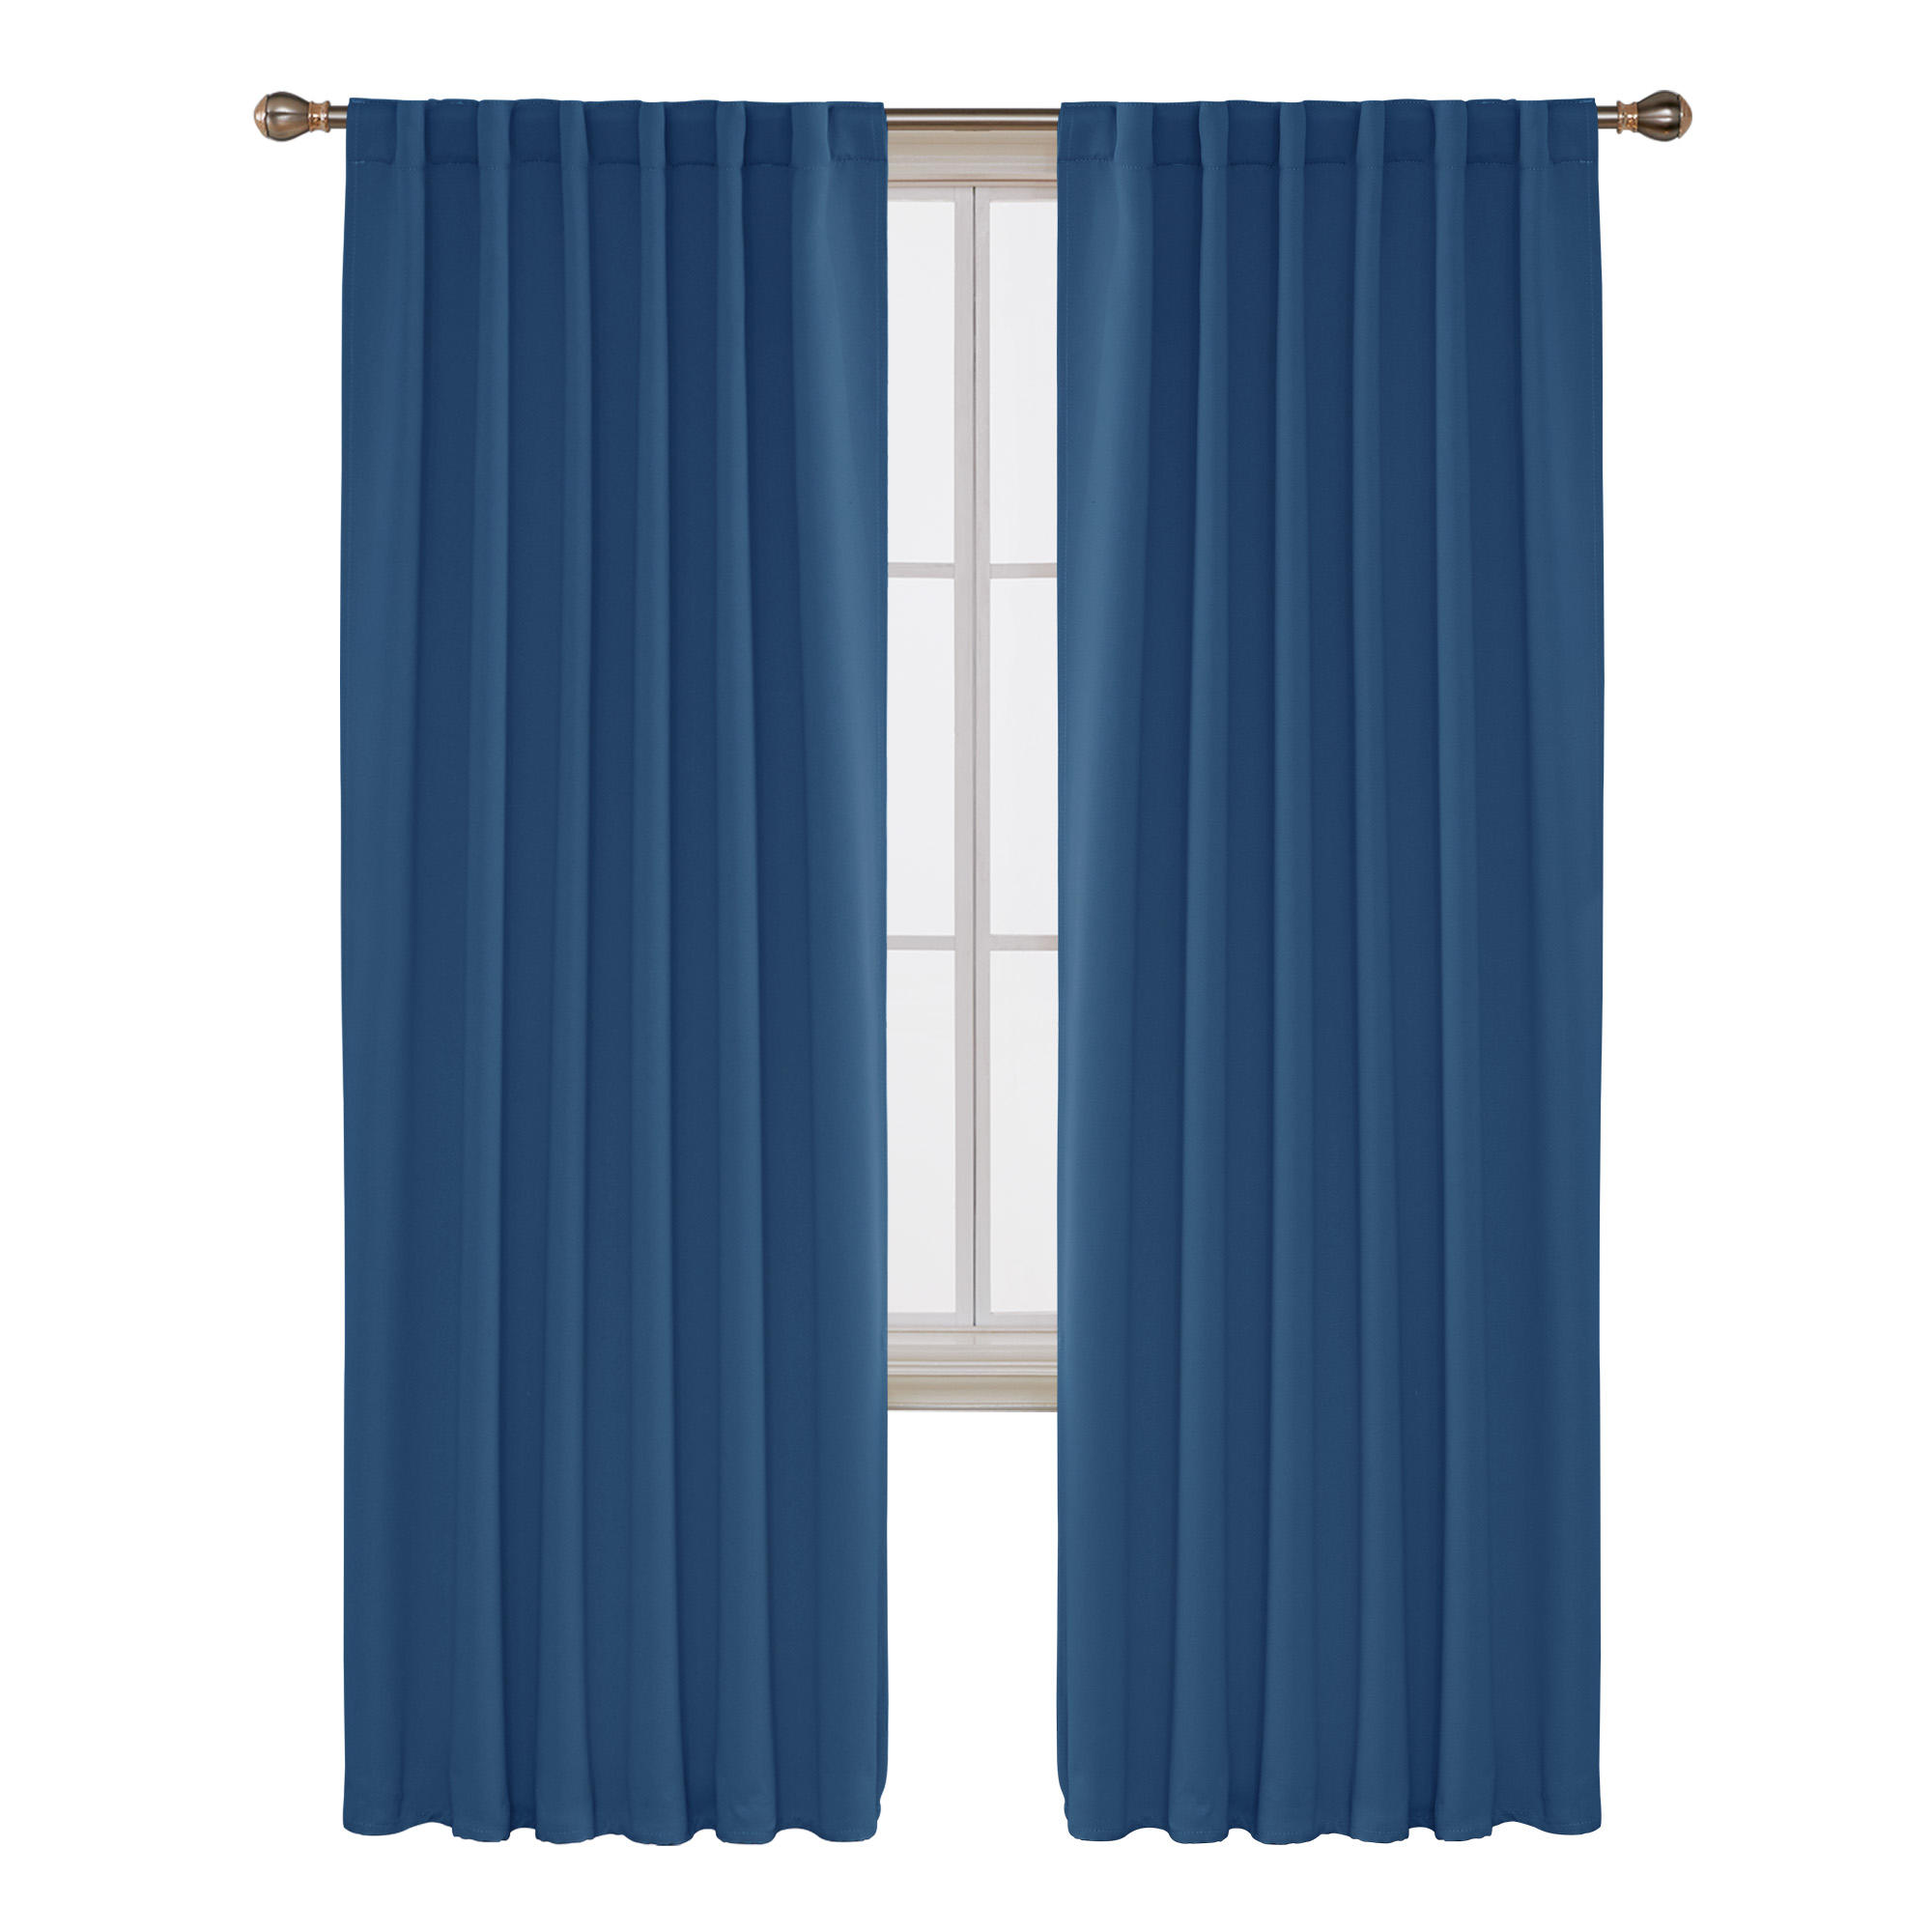 Soft Blue Thermal Insulated Total Blackout Curtains Drapes Fabric with Coated Silver Back for Home Bedroom Living Room Curtains